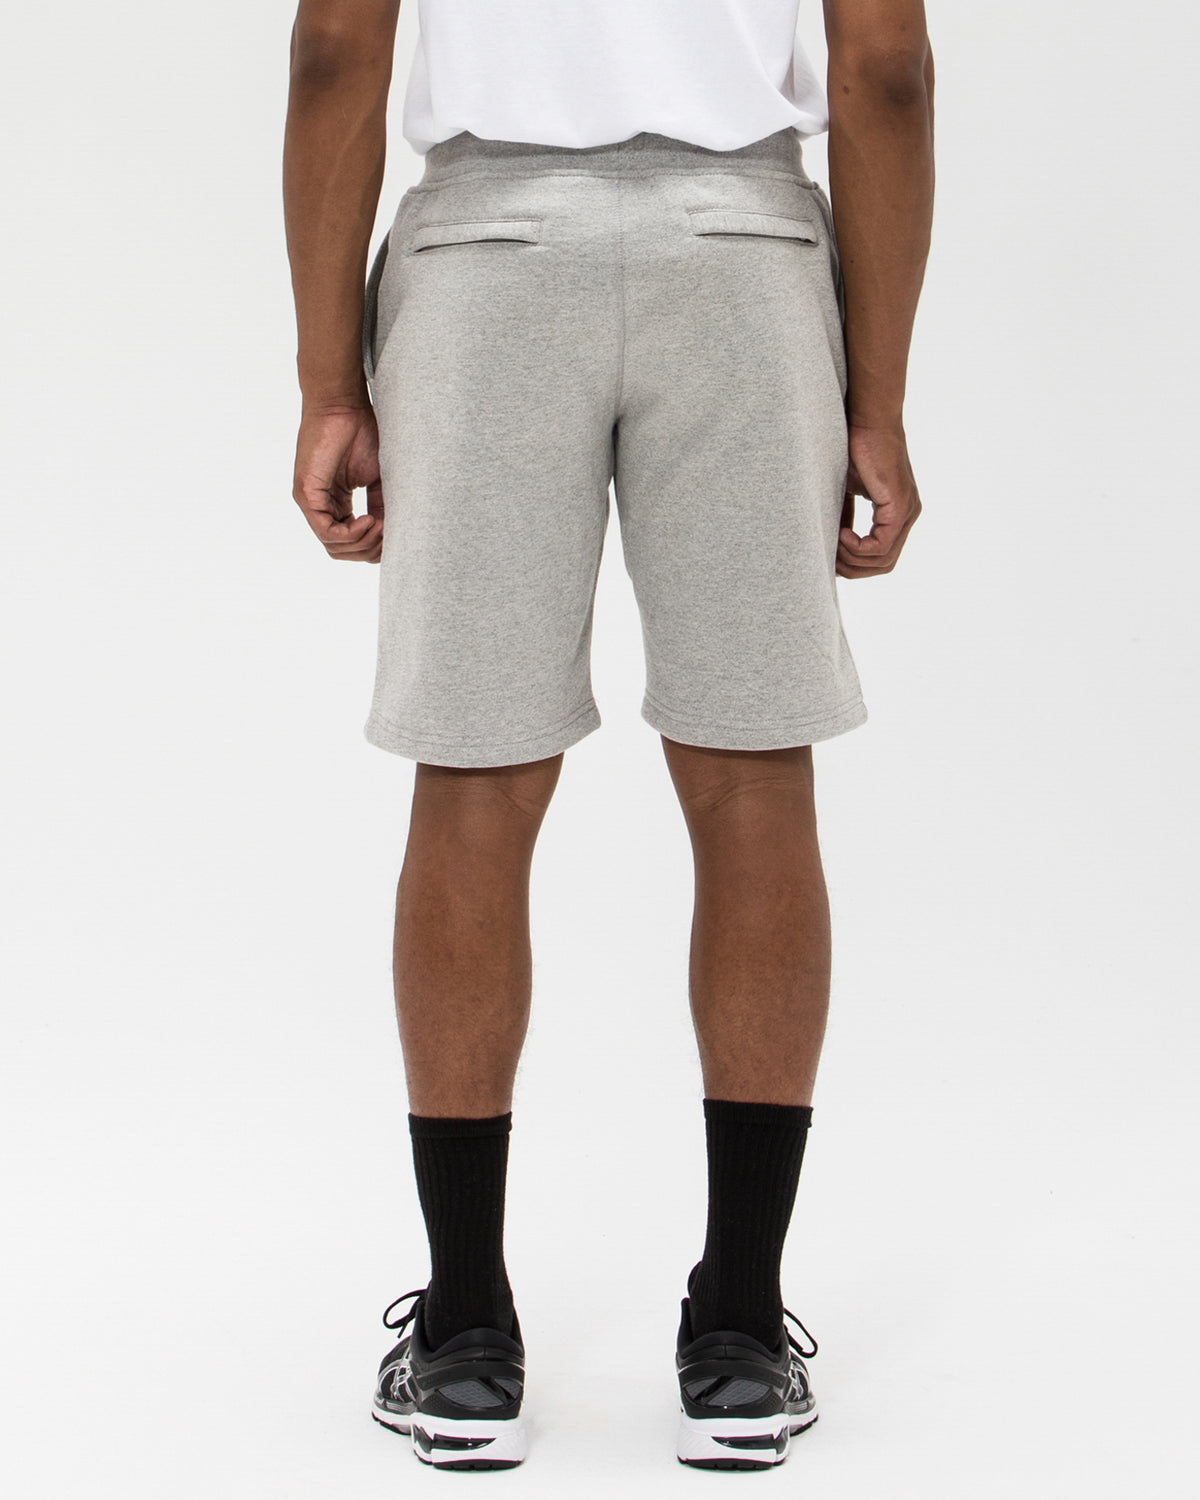 UNDEFEATED ICON SHORT